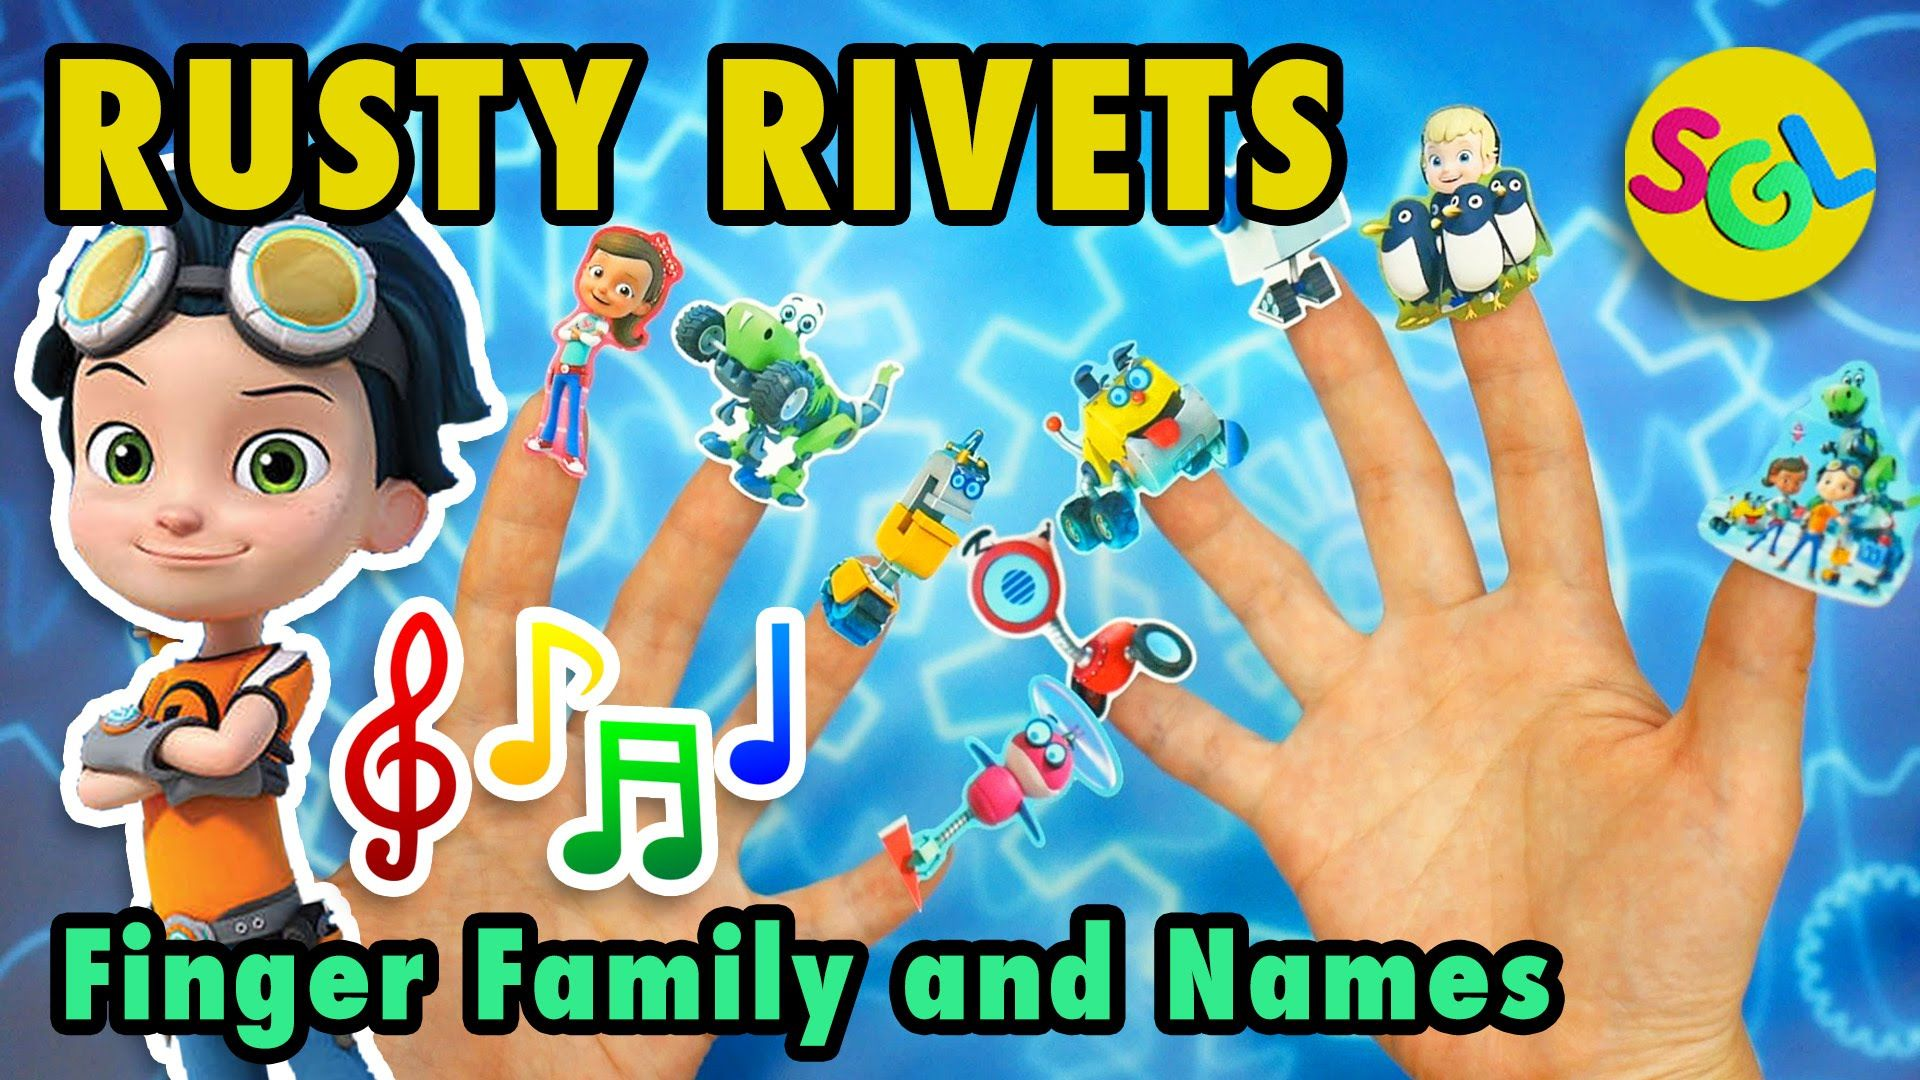 Rusty Rivets Finger Family Song for Kids: Names of Nick Jr Rusty ...